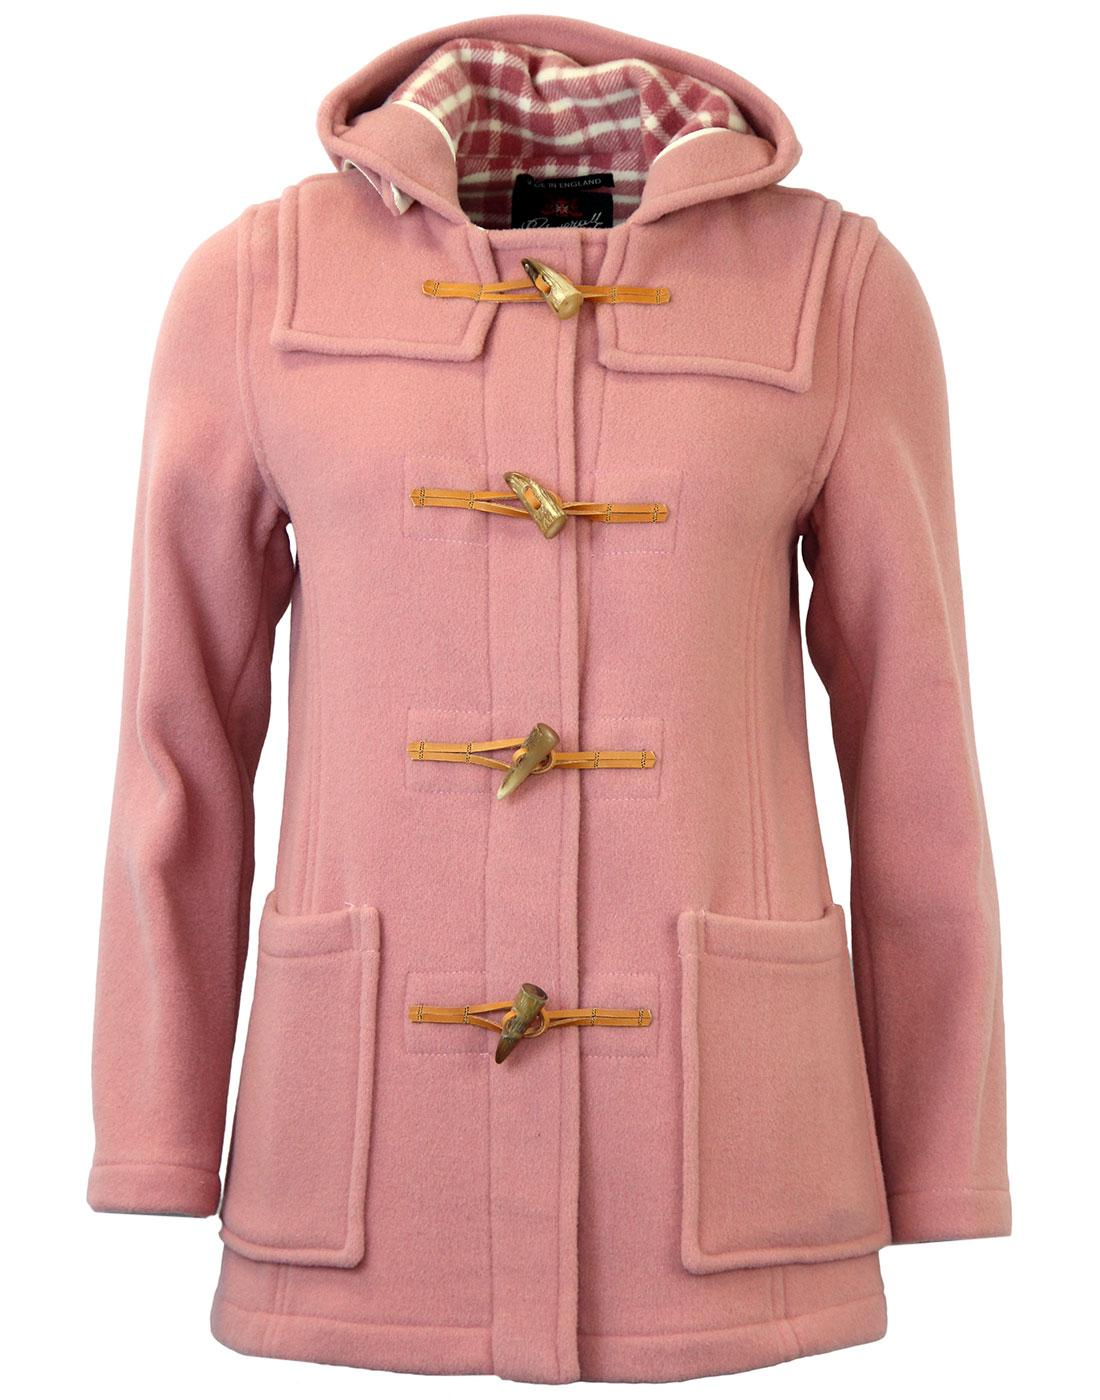 Find Duffle from the Womens department at Debenhams. Shop a wide range of Coats & jackets products and more at our online shop today. Menu Red check coat Save. Was £ Now £ Dorothy Perkins Multi colour throw on leopard print duffle coat Save. Was £ Now £